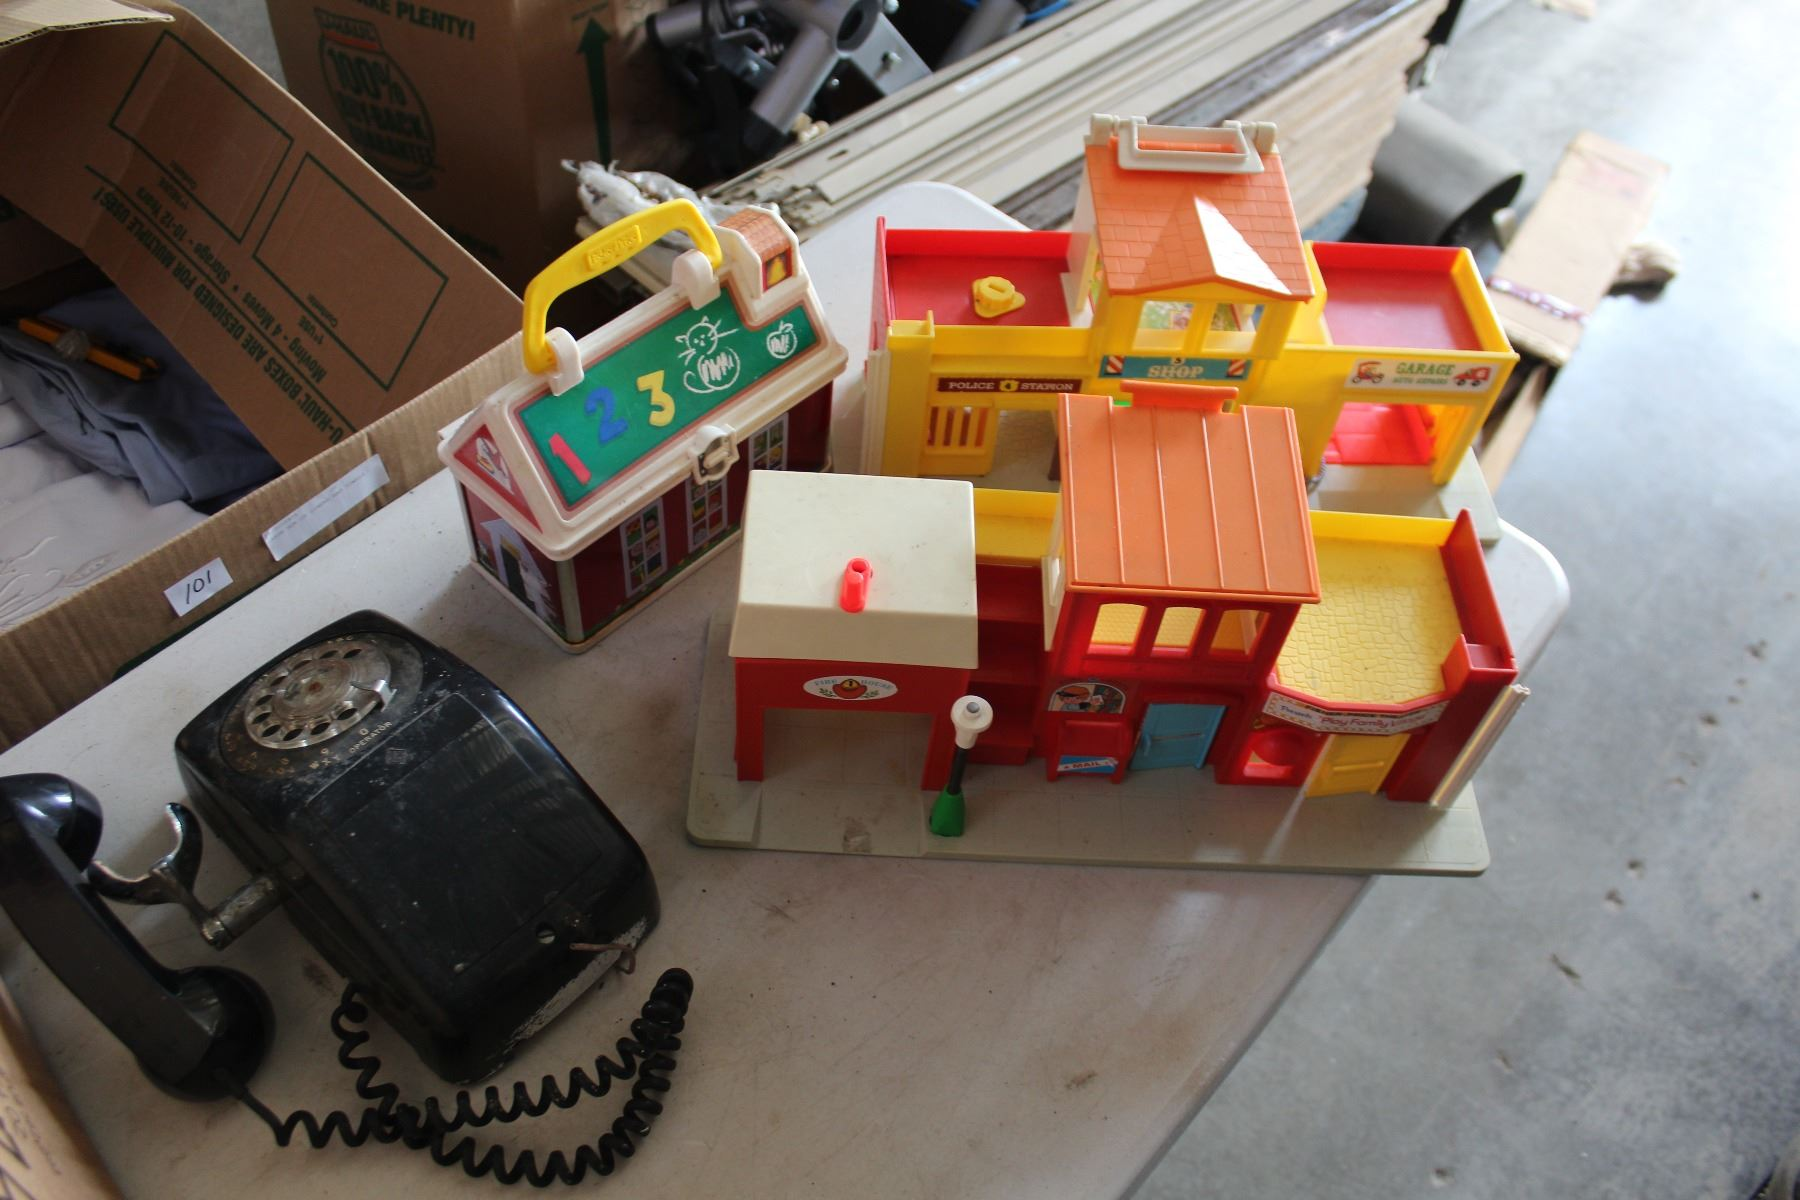 image 1 vintage fisher price toys and rotary phone [ 1800 x 1200 Pixel ]